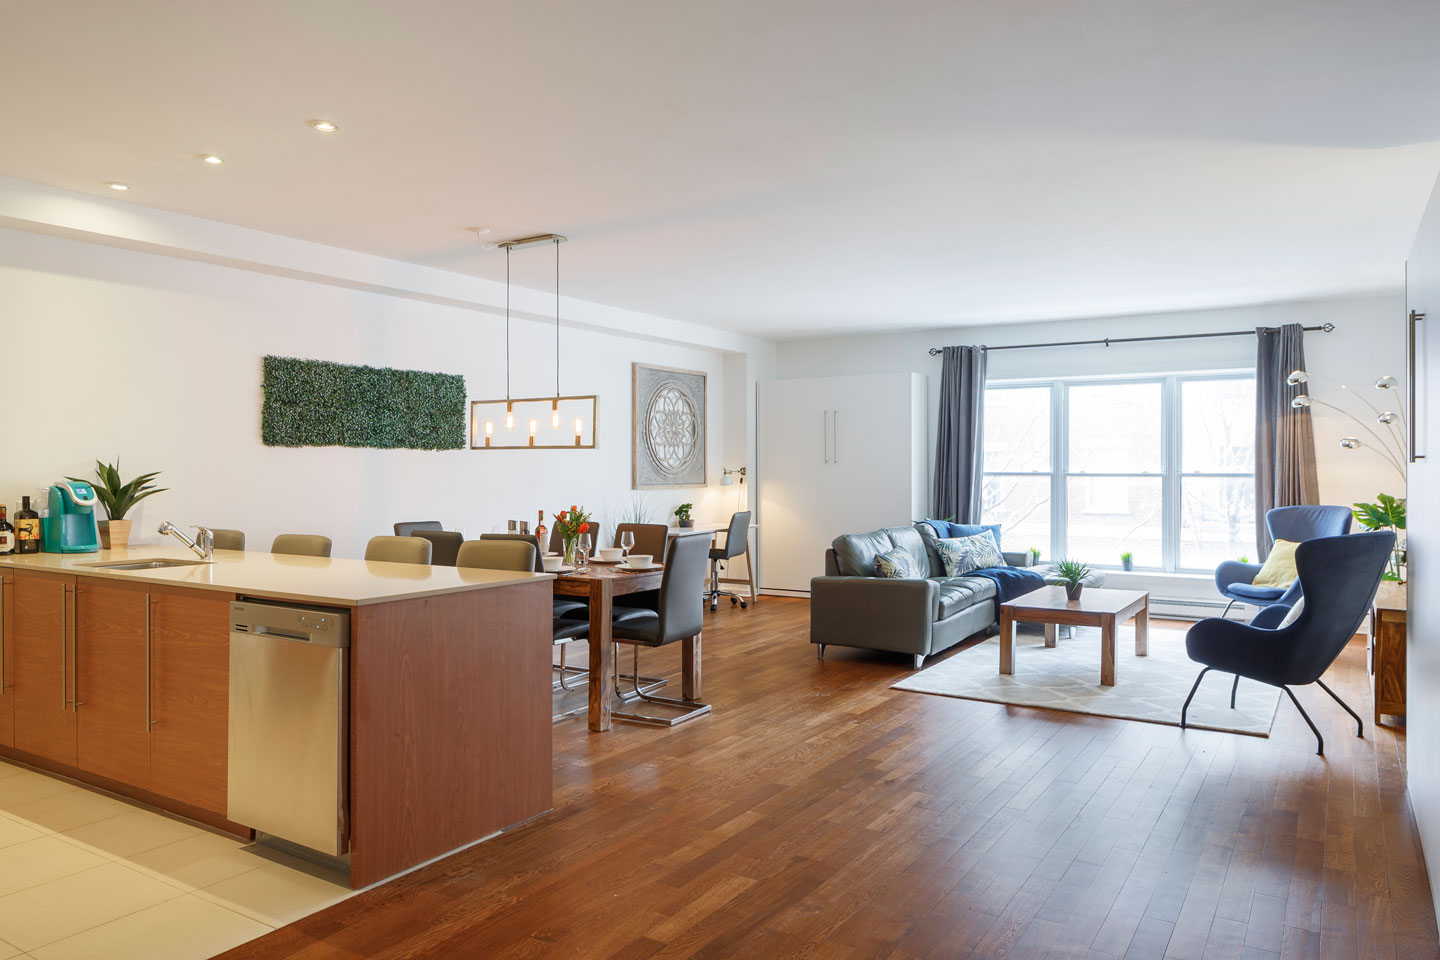 Suite 103: spacious living space